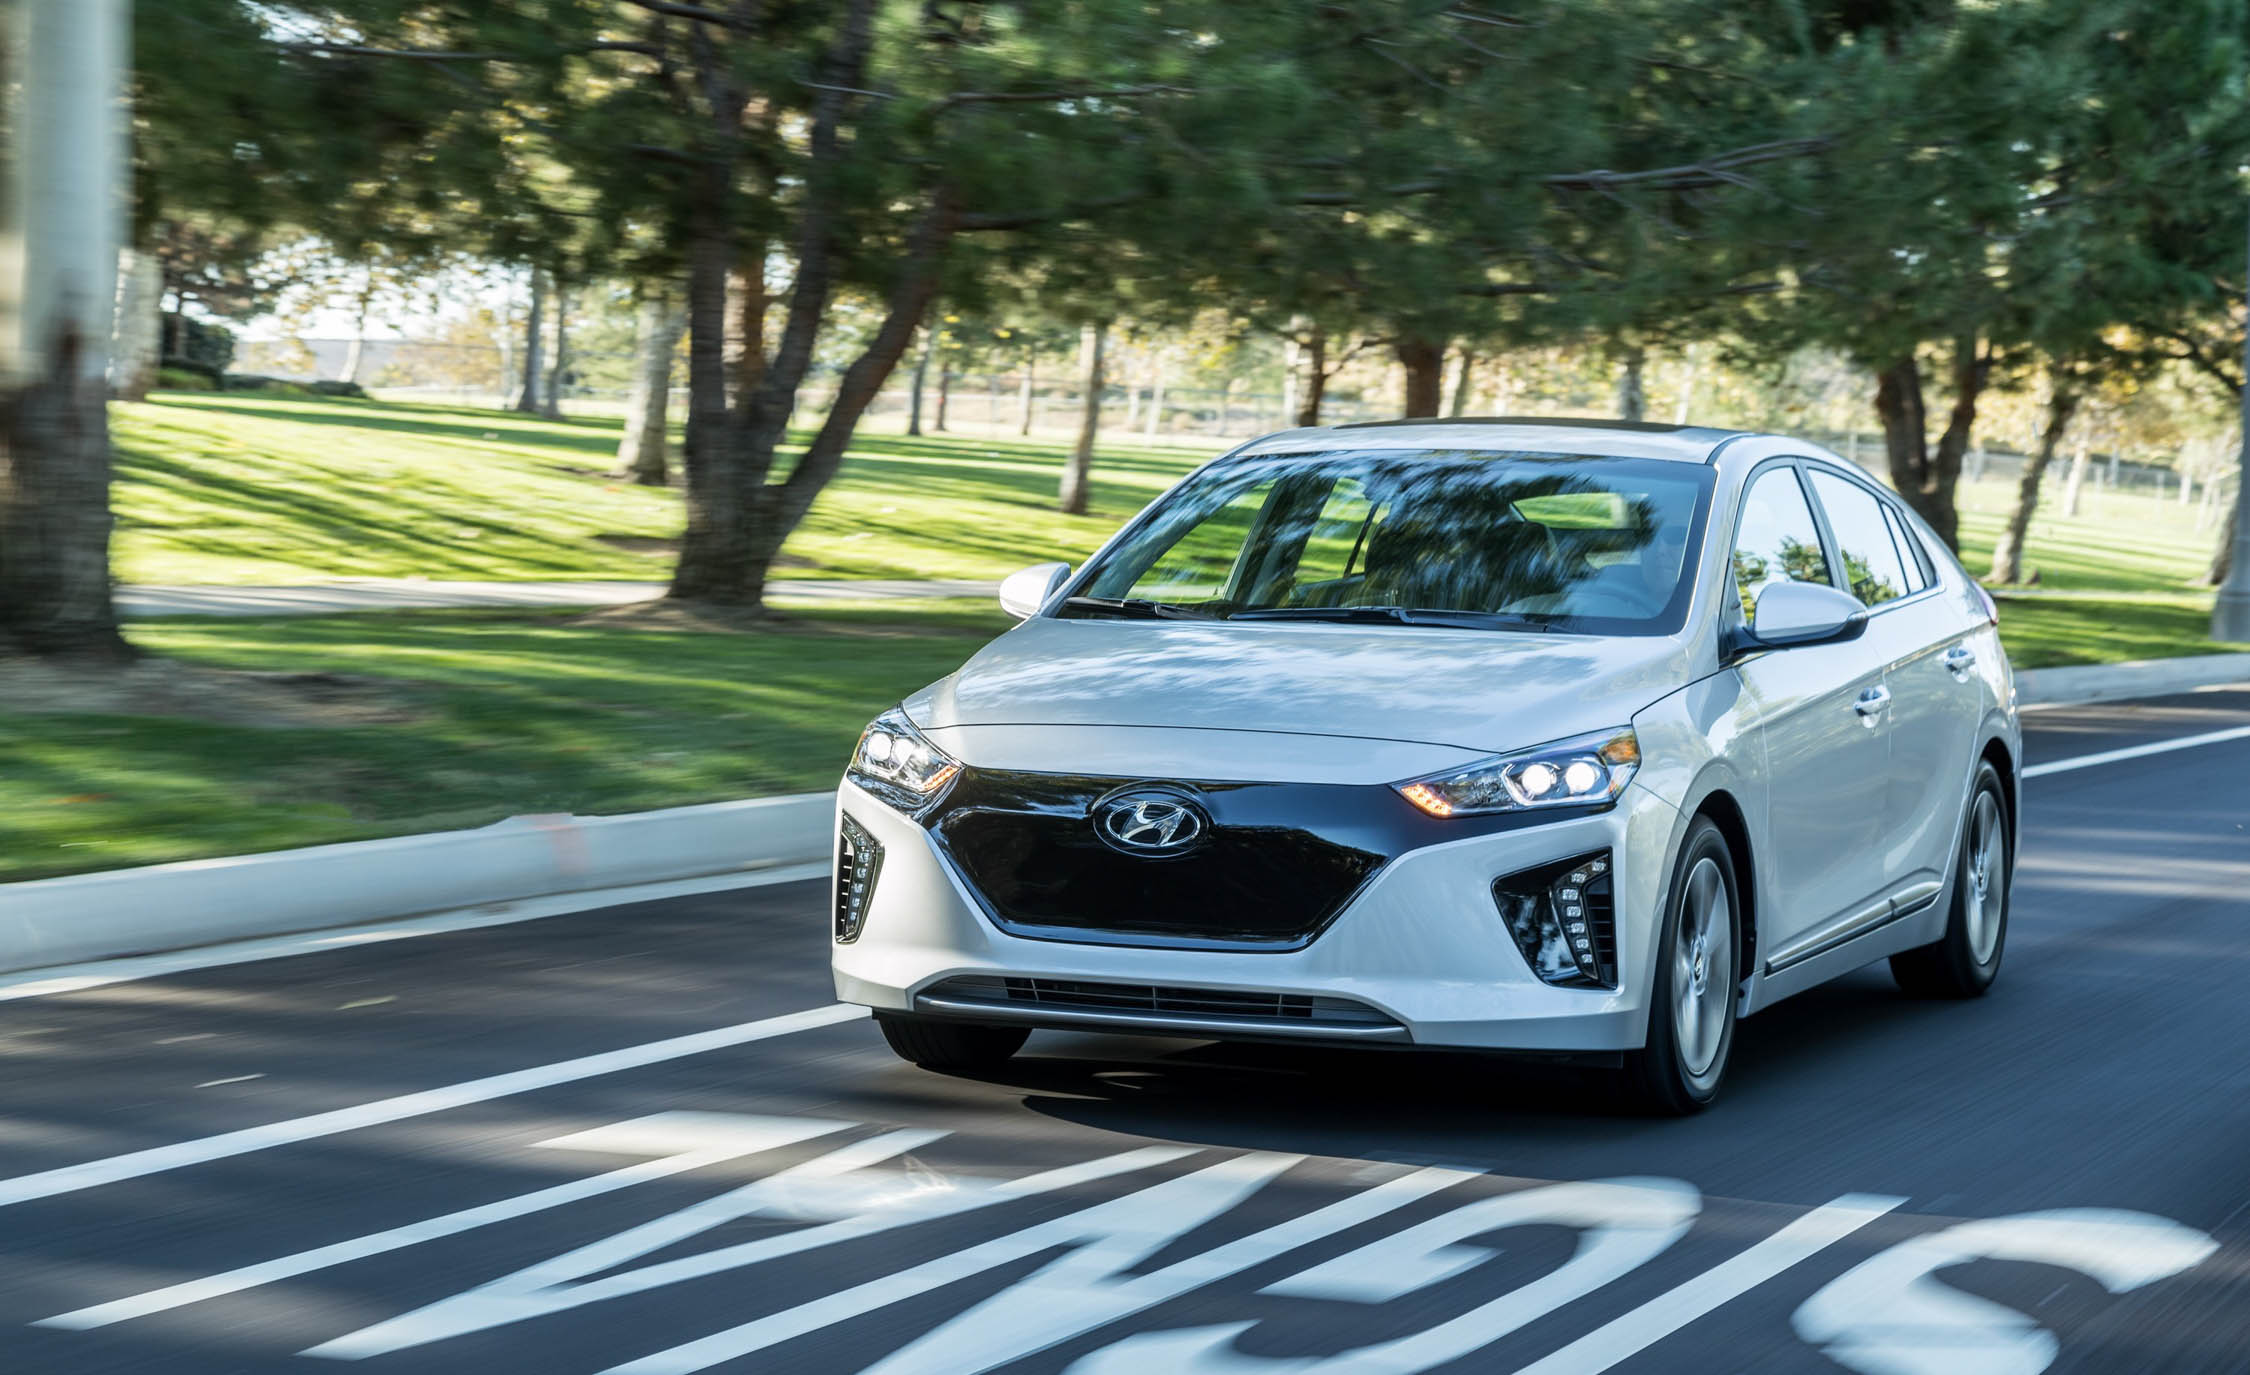 2017 Hyundai Ioniq Electric Test Drive (Photo 29 of 67)